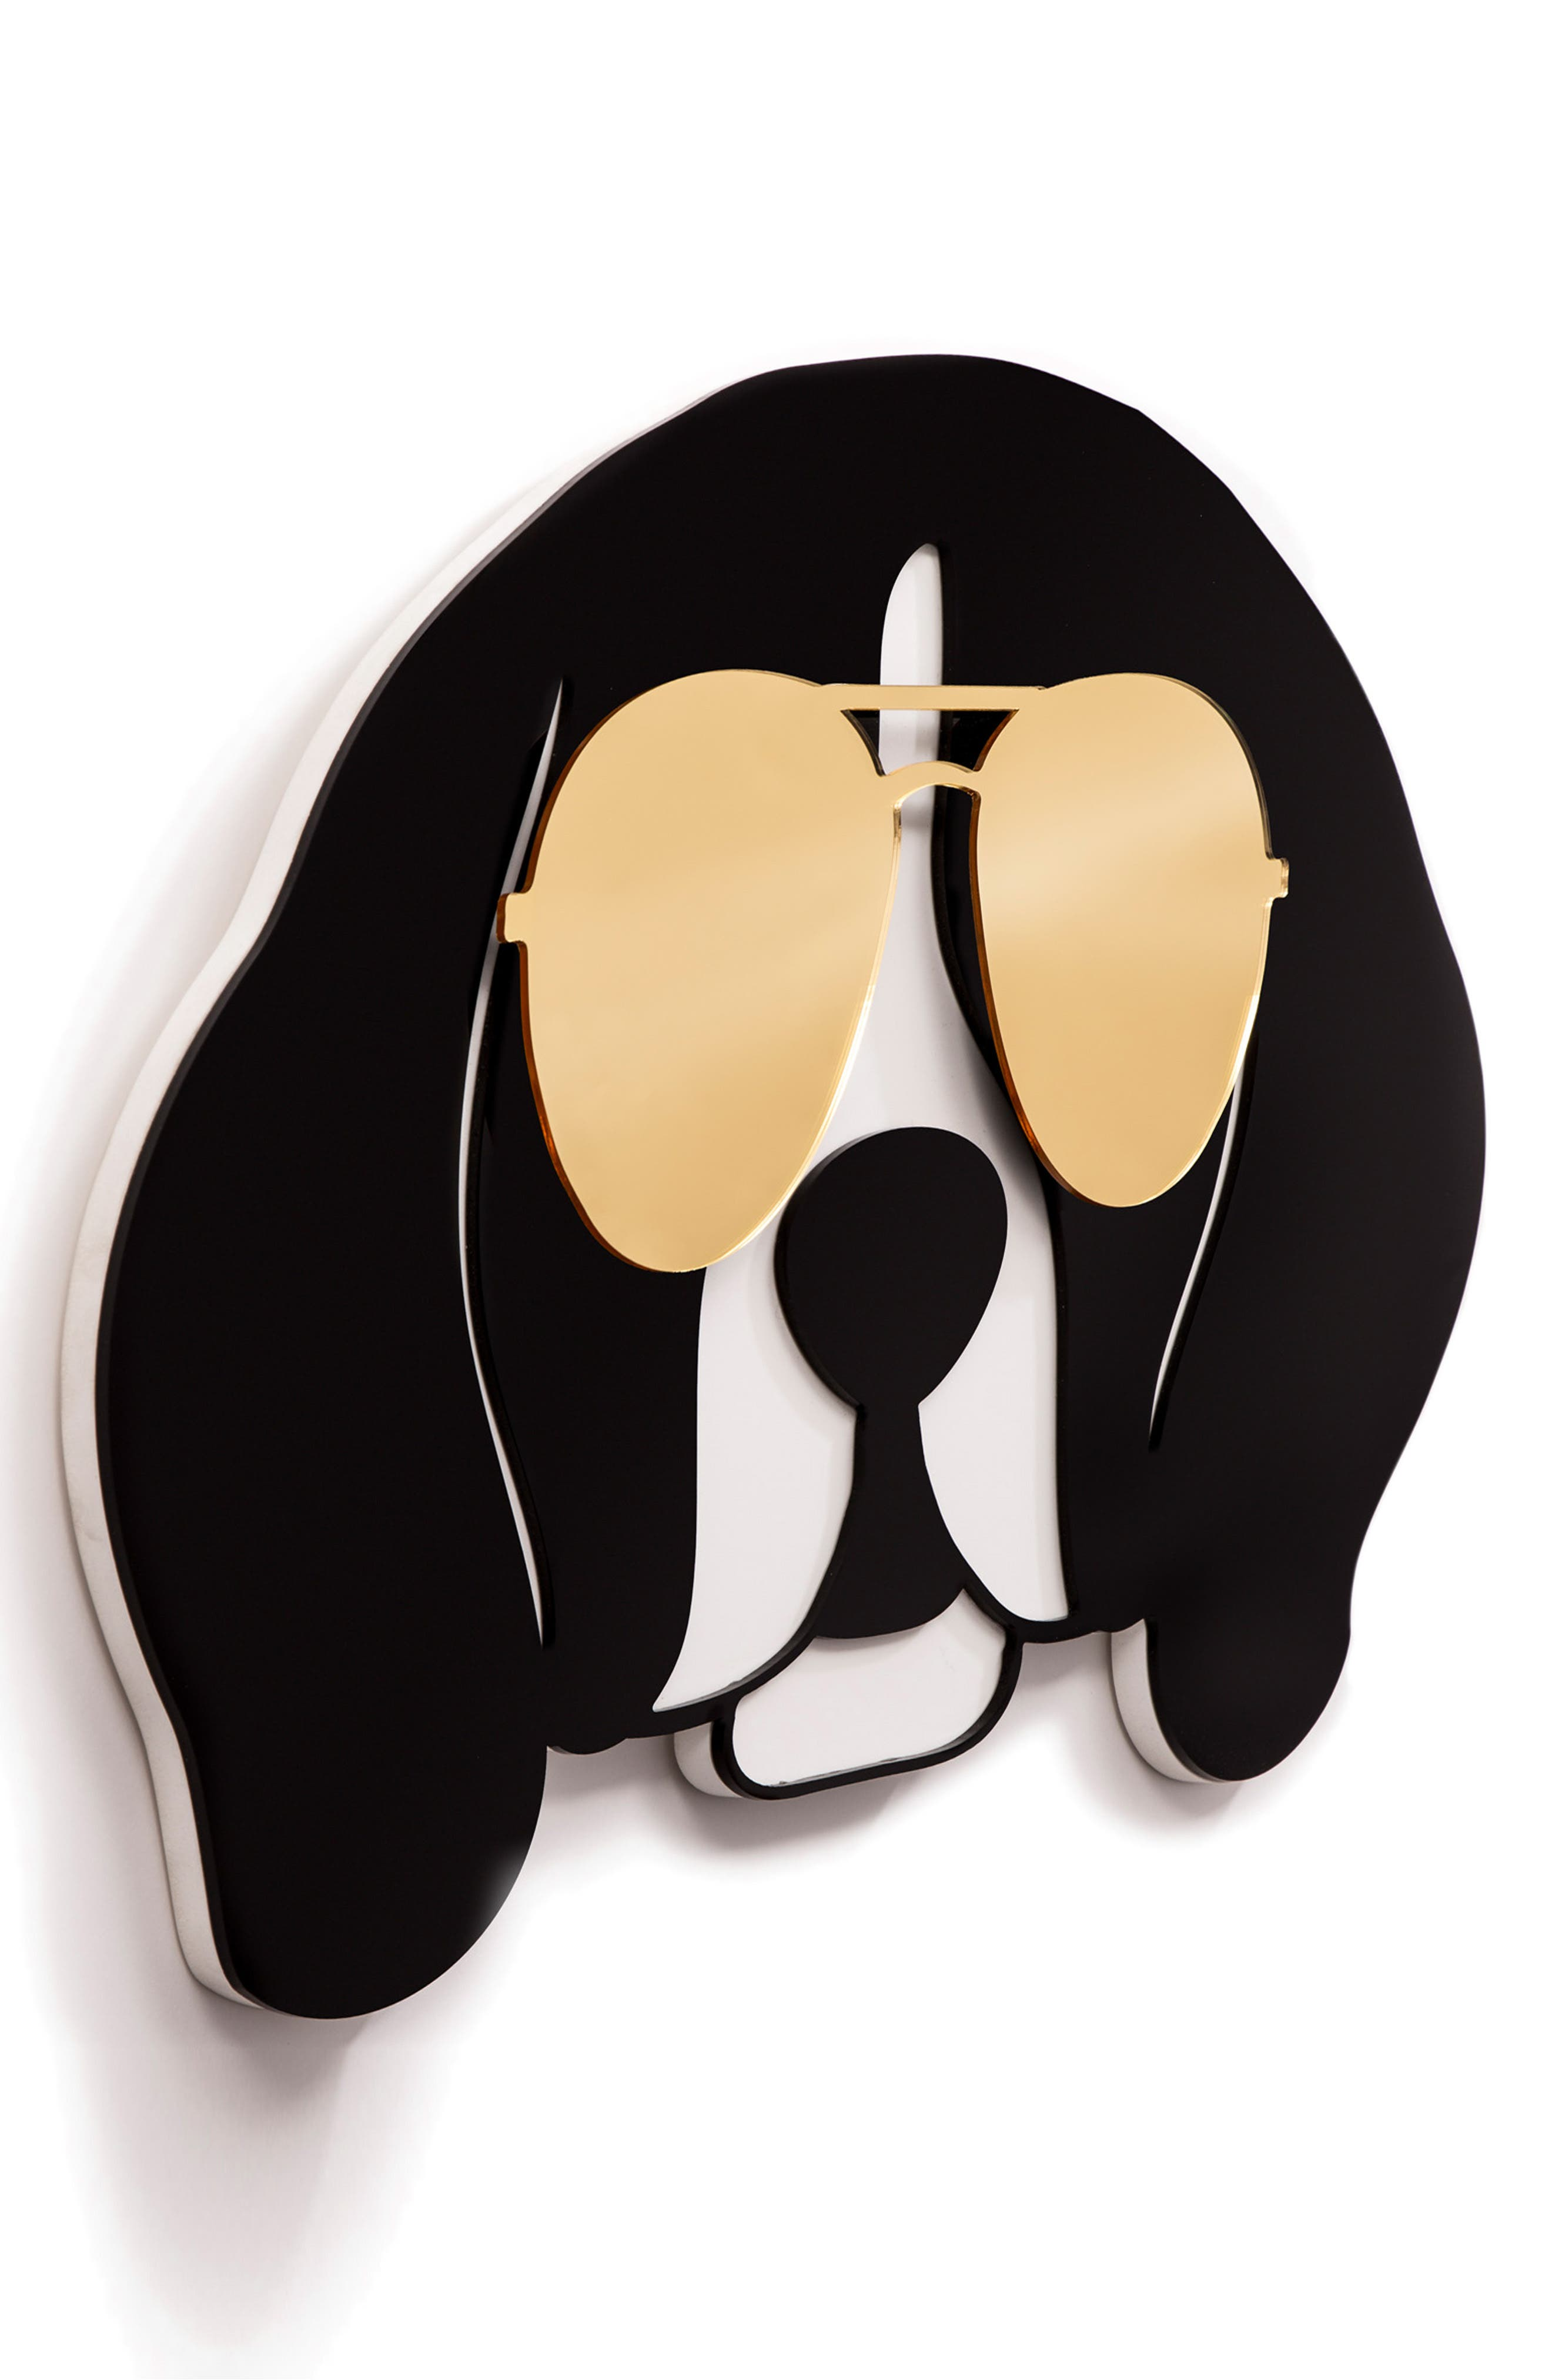 Cool Beagle Wall Art,                             Alternate thumbnail 2, color,                             GOLD BLACK AND WHITE